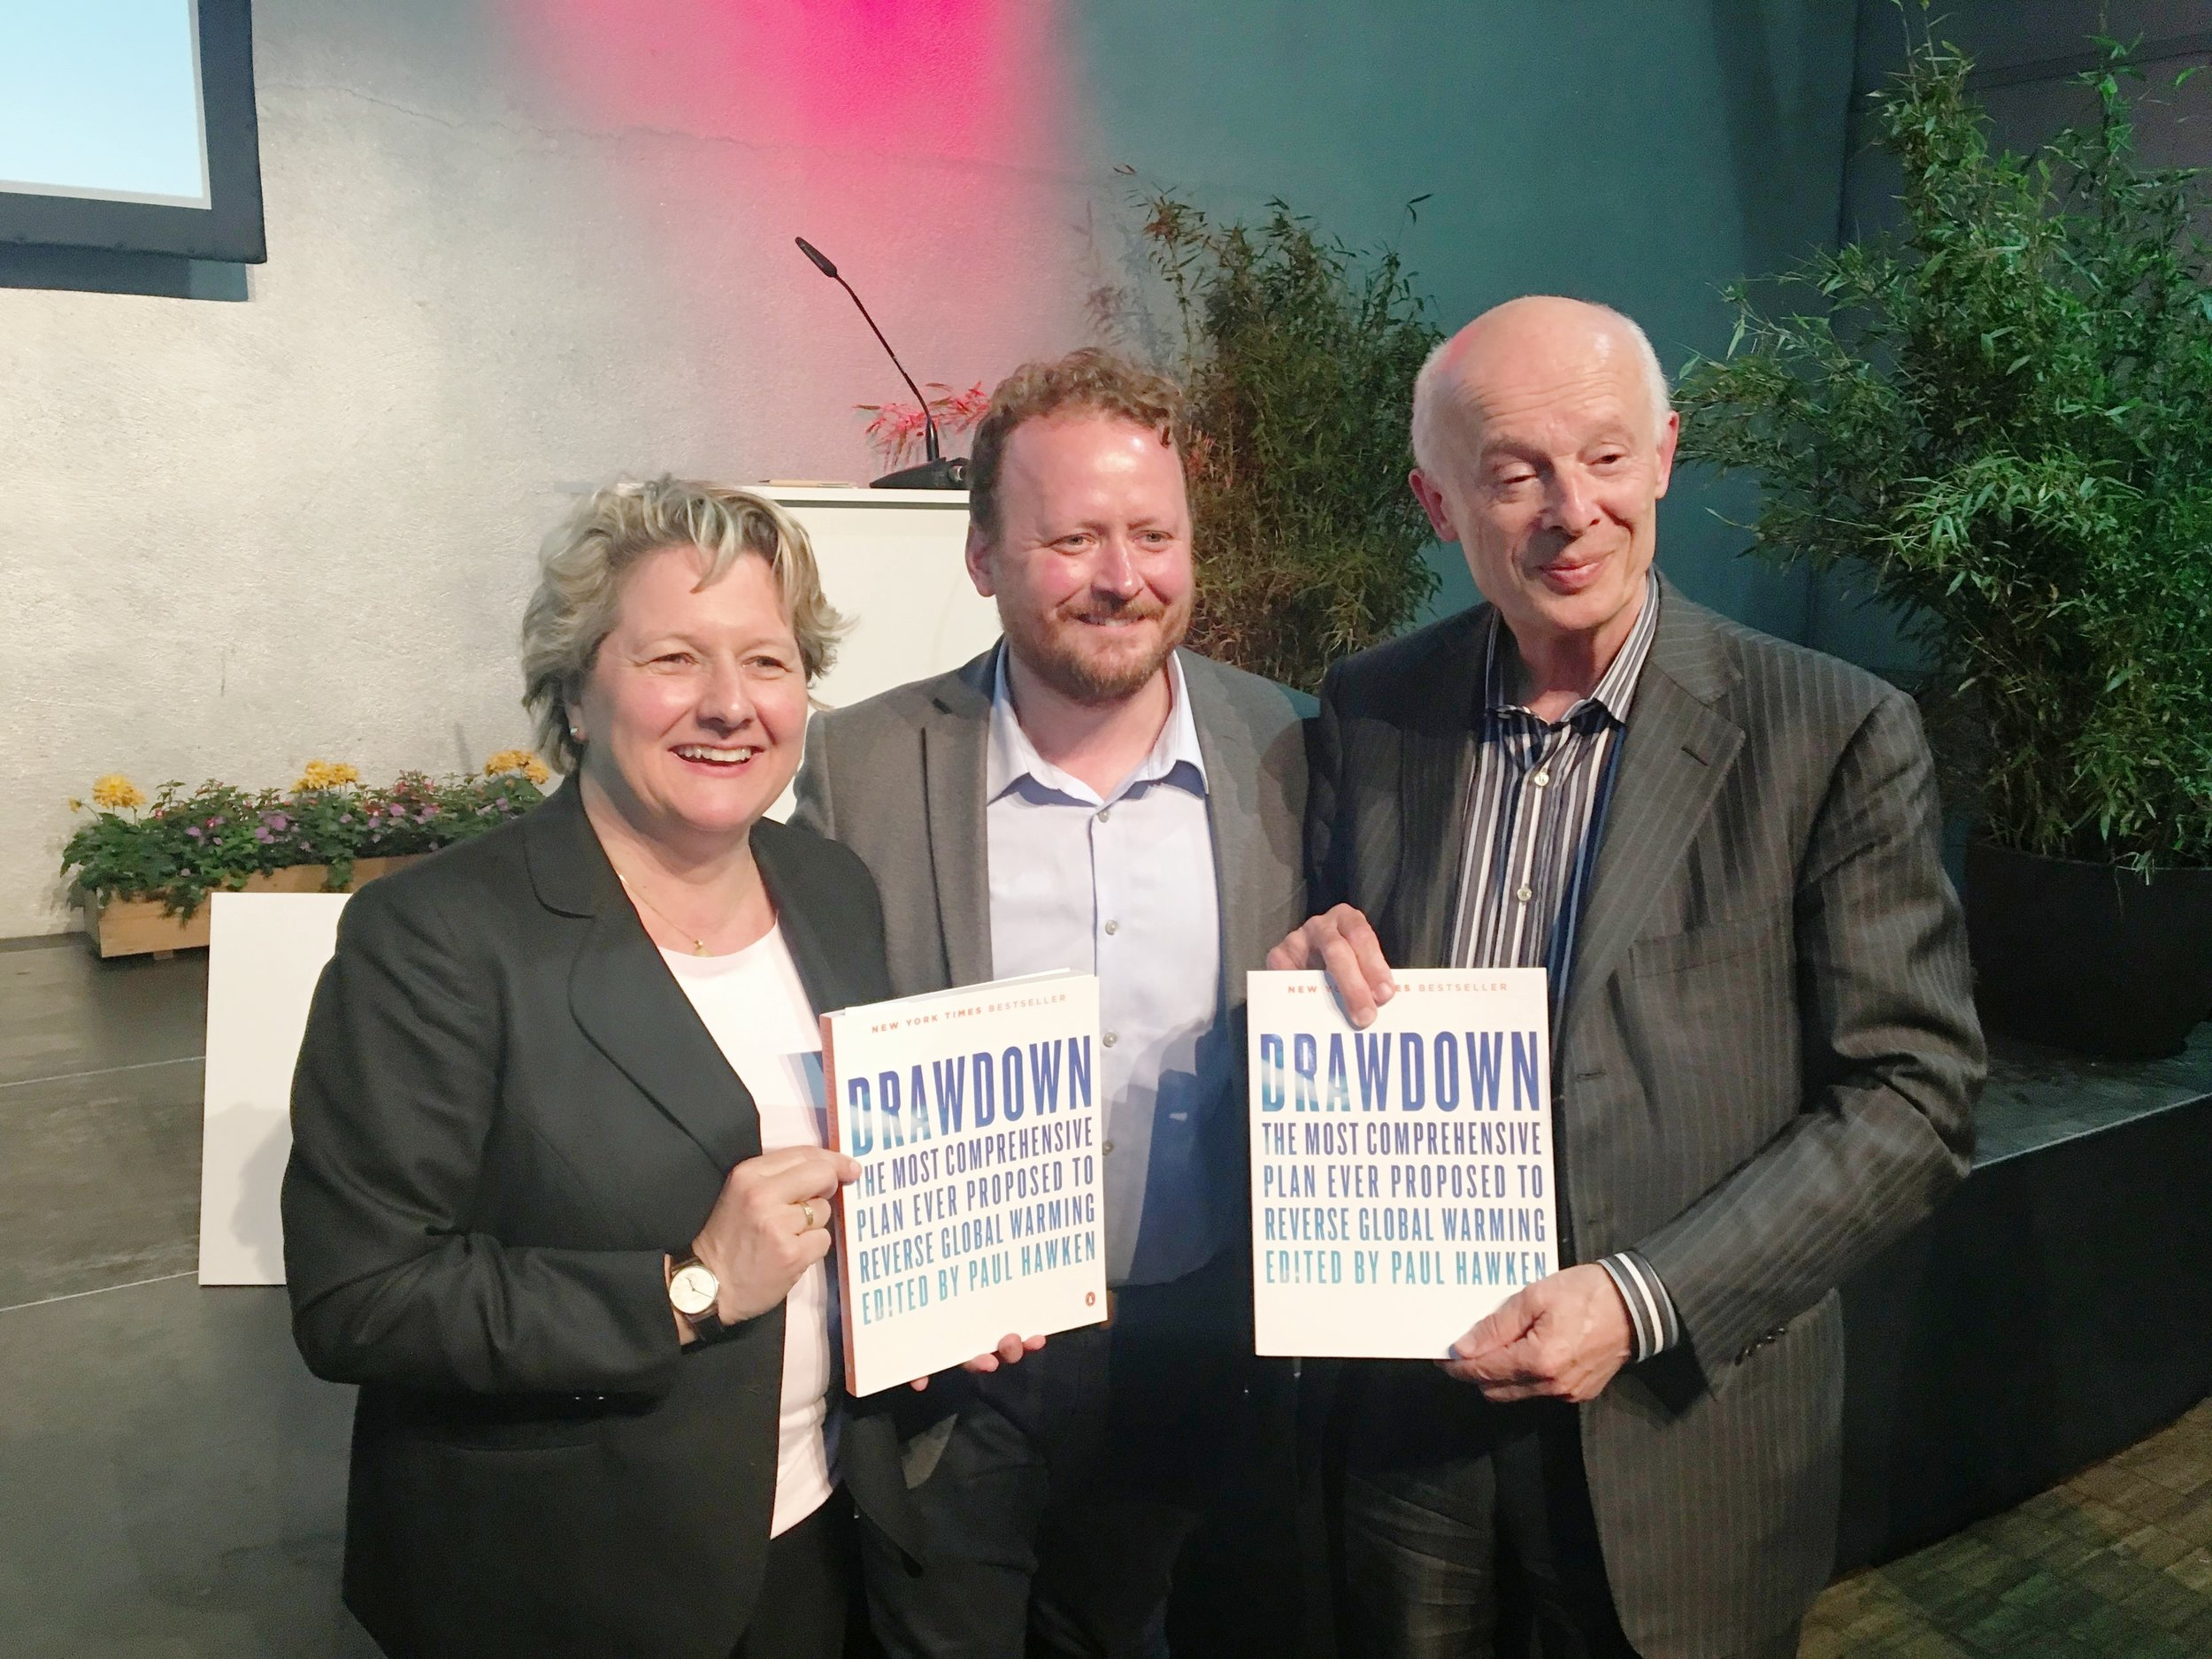 @ launch of Drawdown Europe with Svenja Schulze, German Federal Minister for the Environment, and Prof. Dr. h.c. Hans Joachim Schellnhuber, Director of the Potsdam Institute for Climate Impact.